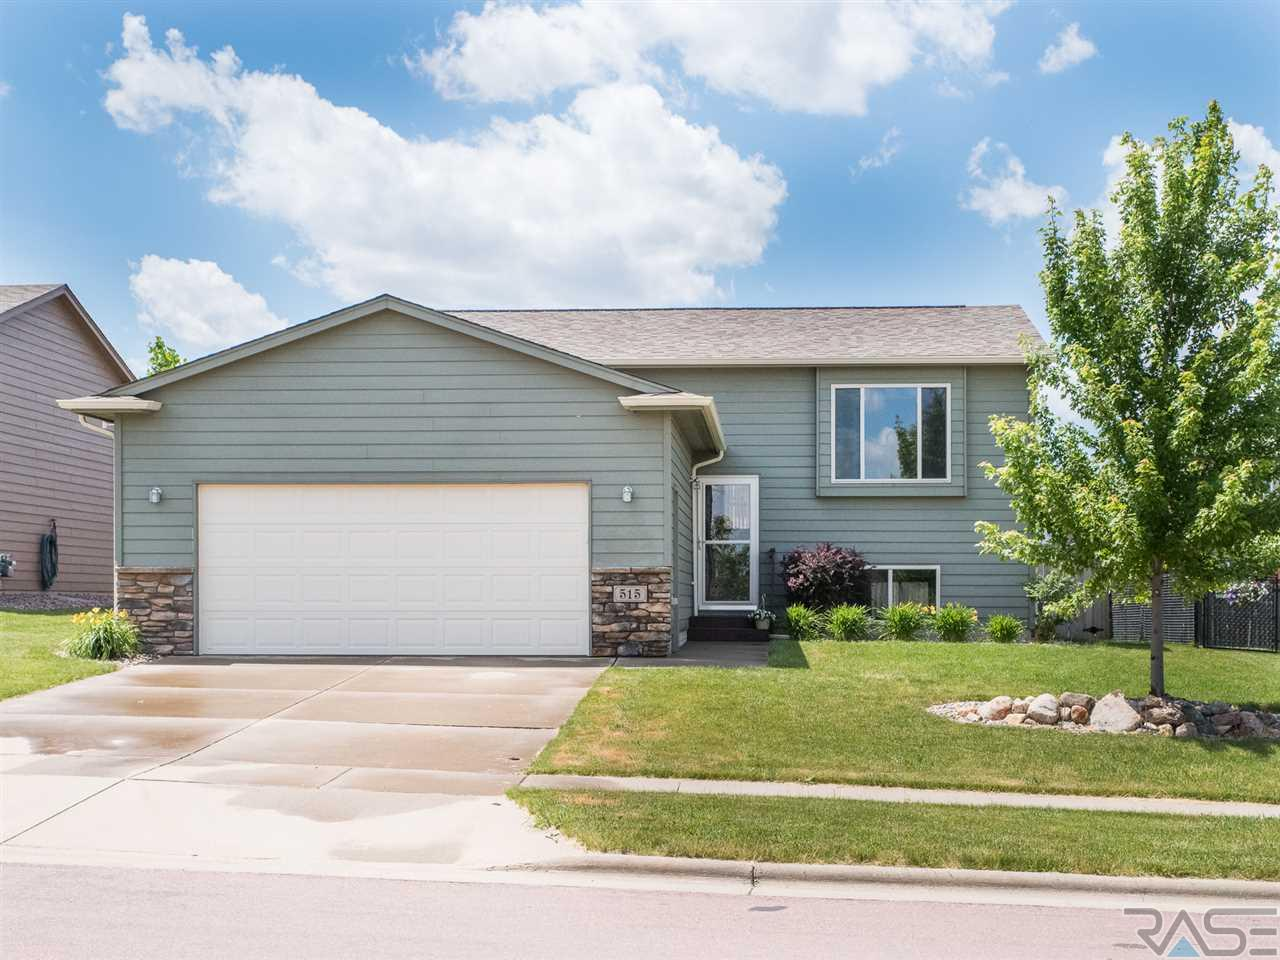 515 S Clearbrook Ave, Sioux Falls, SD 57106